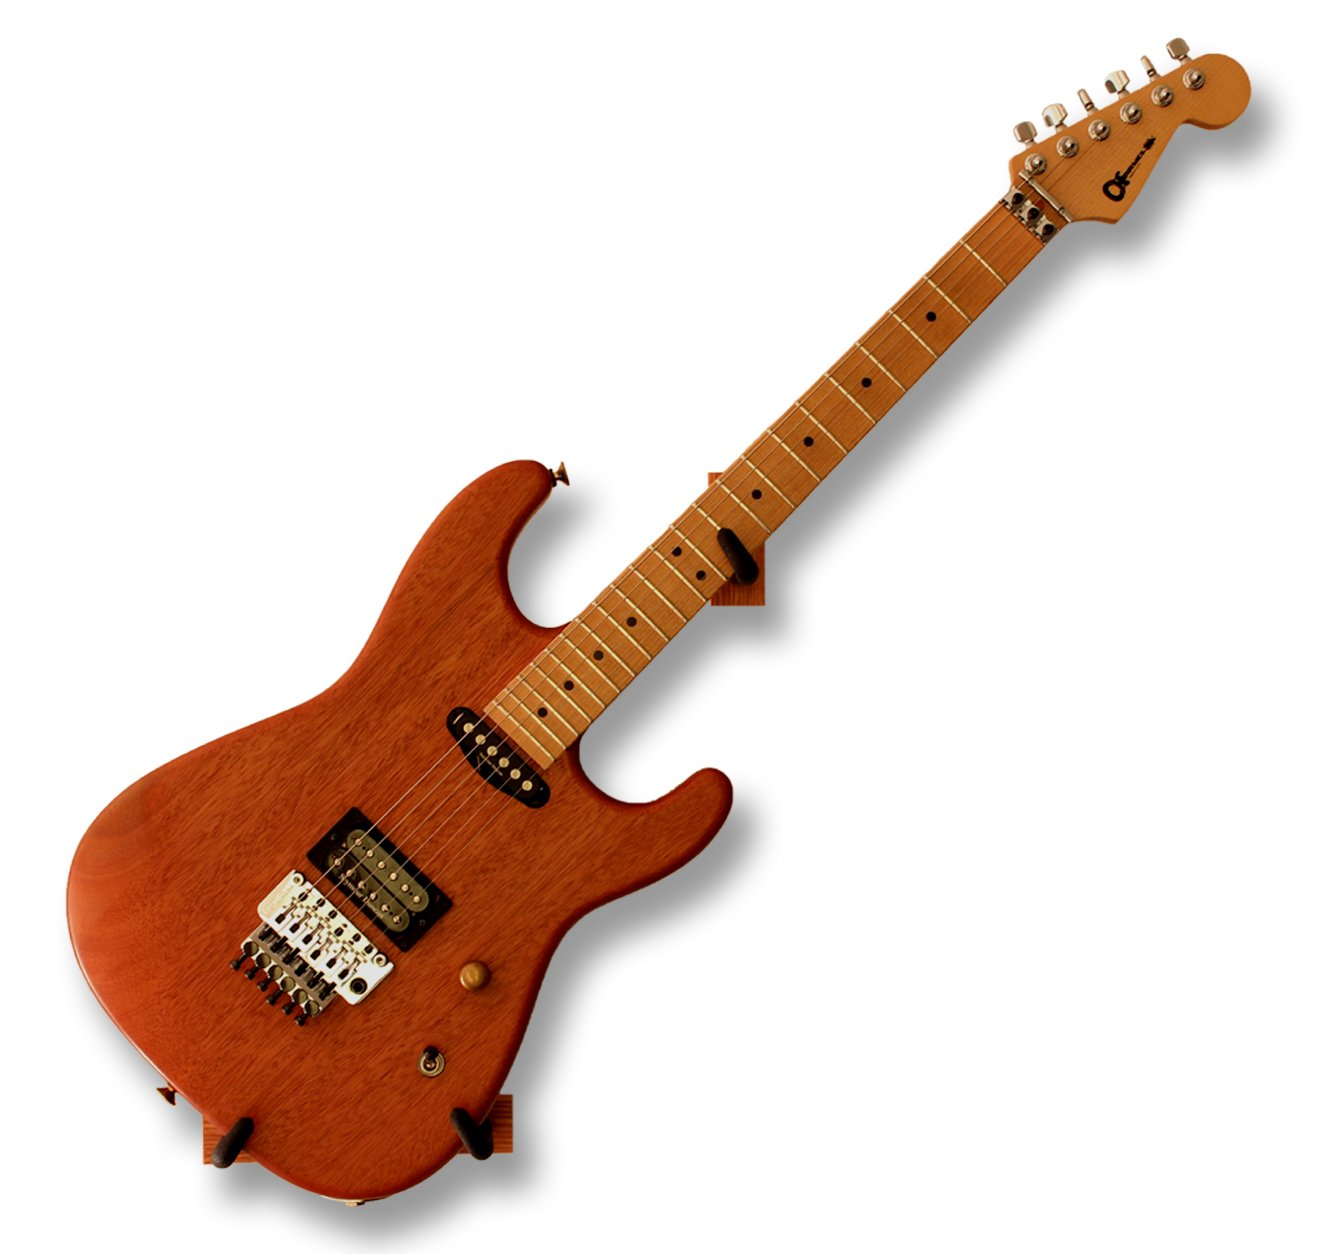 Angled Guitar Wall Hanger Display for Electric and Thin Body Guitars- Classic Finish by Hang'em High Guitar Hangers (Image #3)